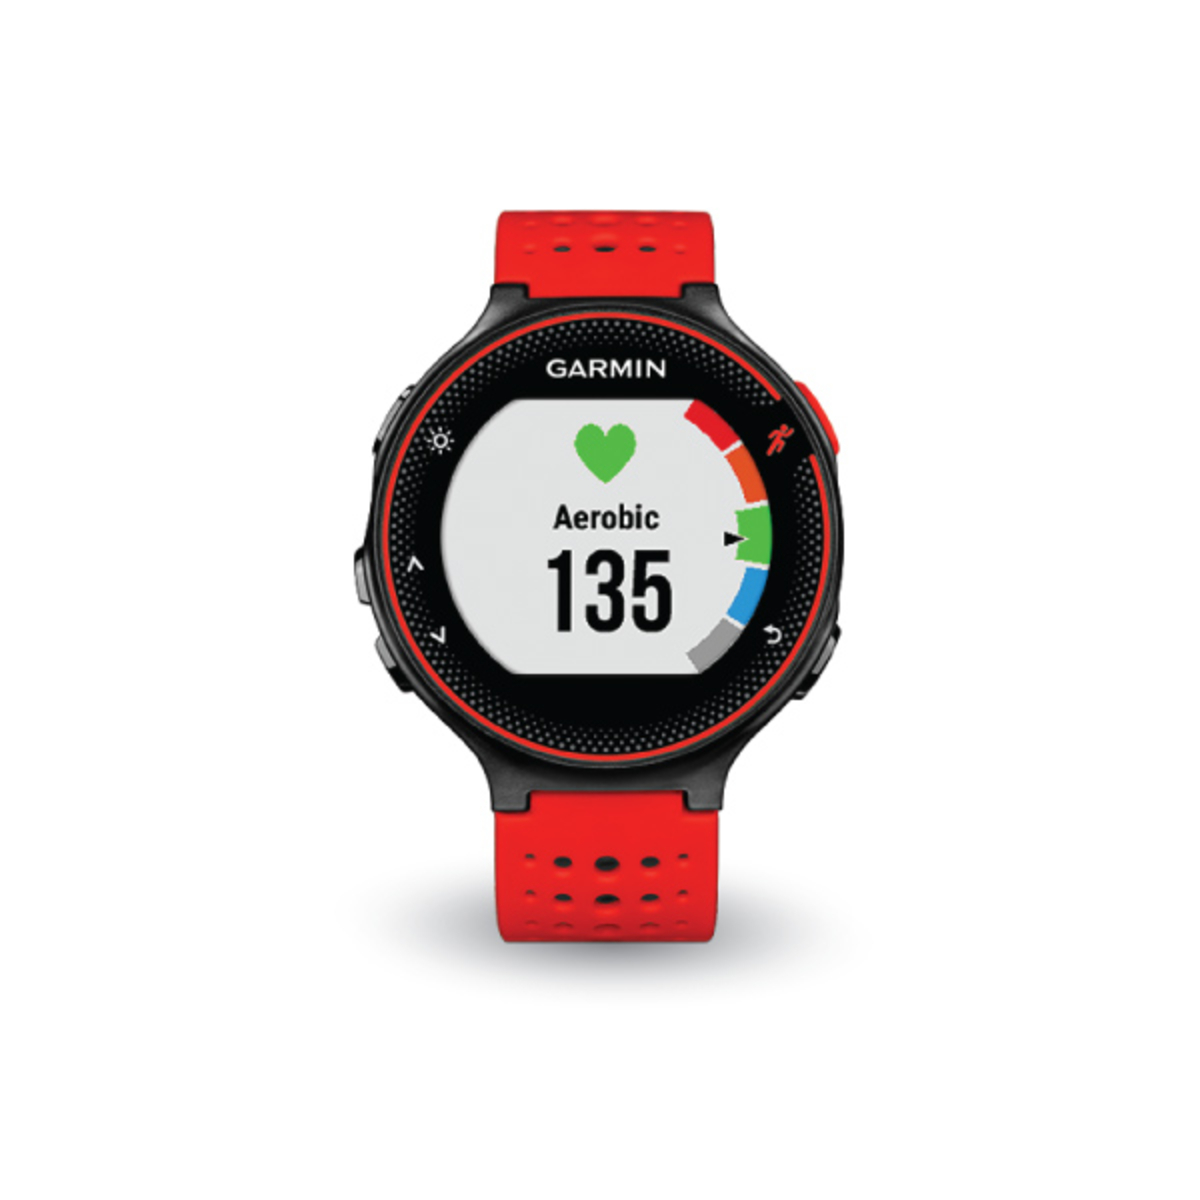 Garmin Forerunner 235 Lava Red Gps Running Watch With Wrist Based Suunto Ambit3 Peak Sapphire Black Hr For Outdoor Sports Heart Rate